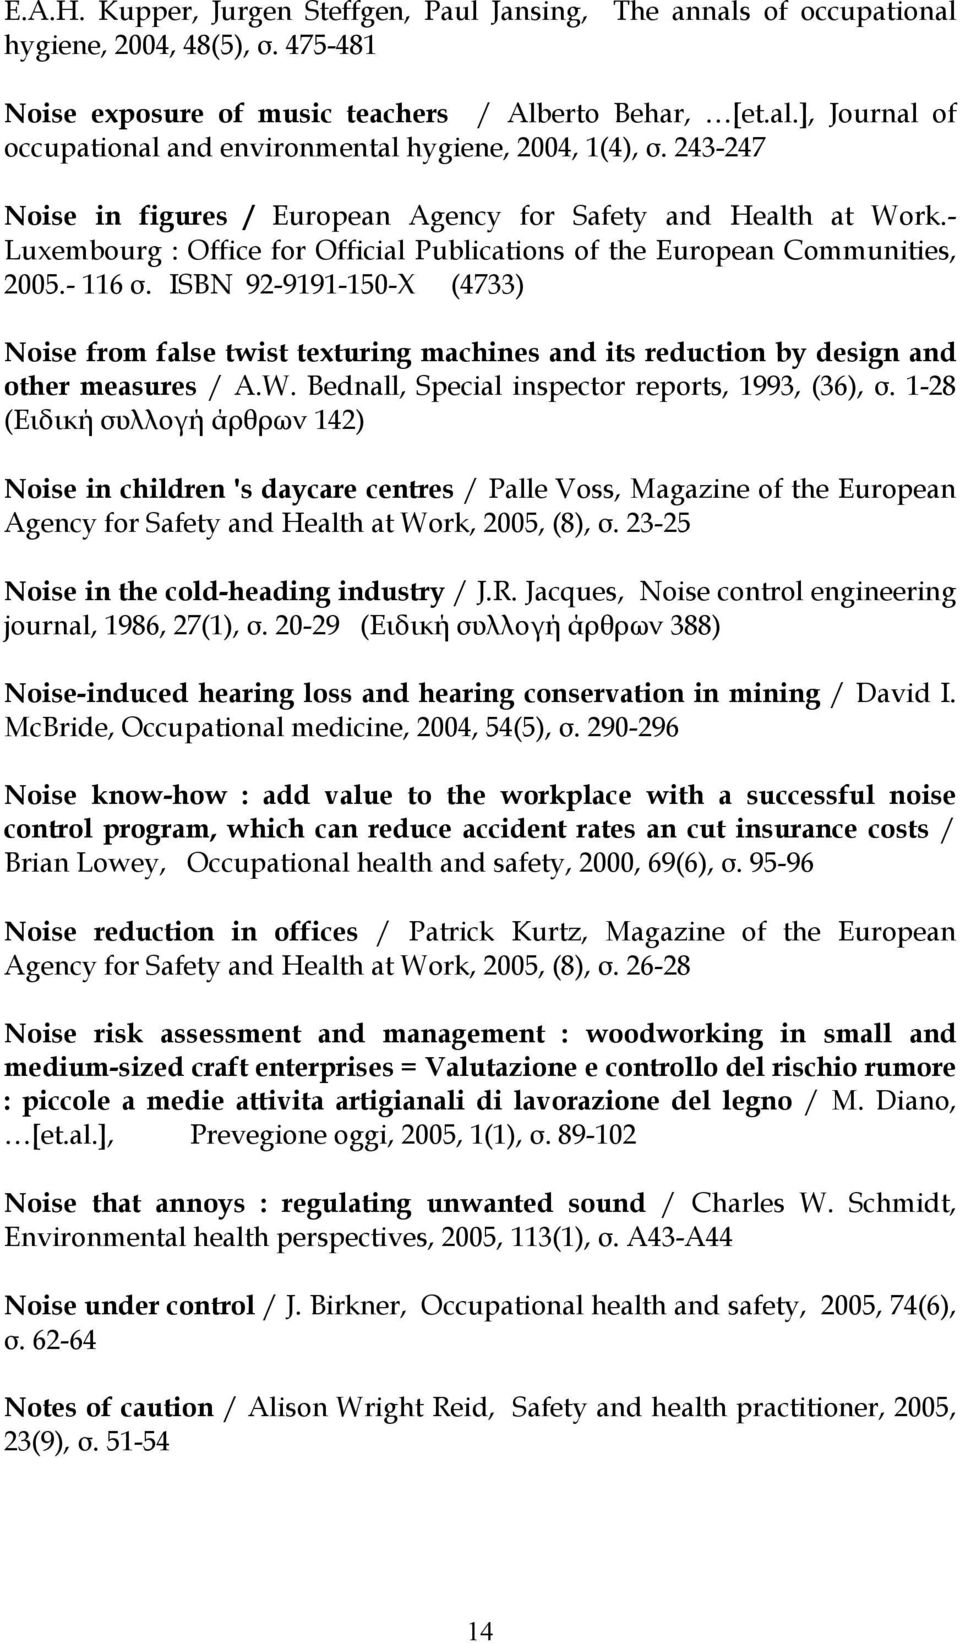 ISBN 92-9191-150-X (4733) Noise from false twist texturing machines and its reduction by design and other measures / A.W. Bednall, Special inspector reports, 1993, (36), σ.